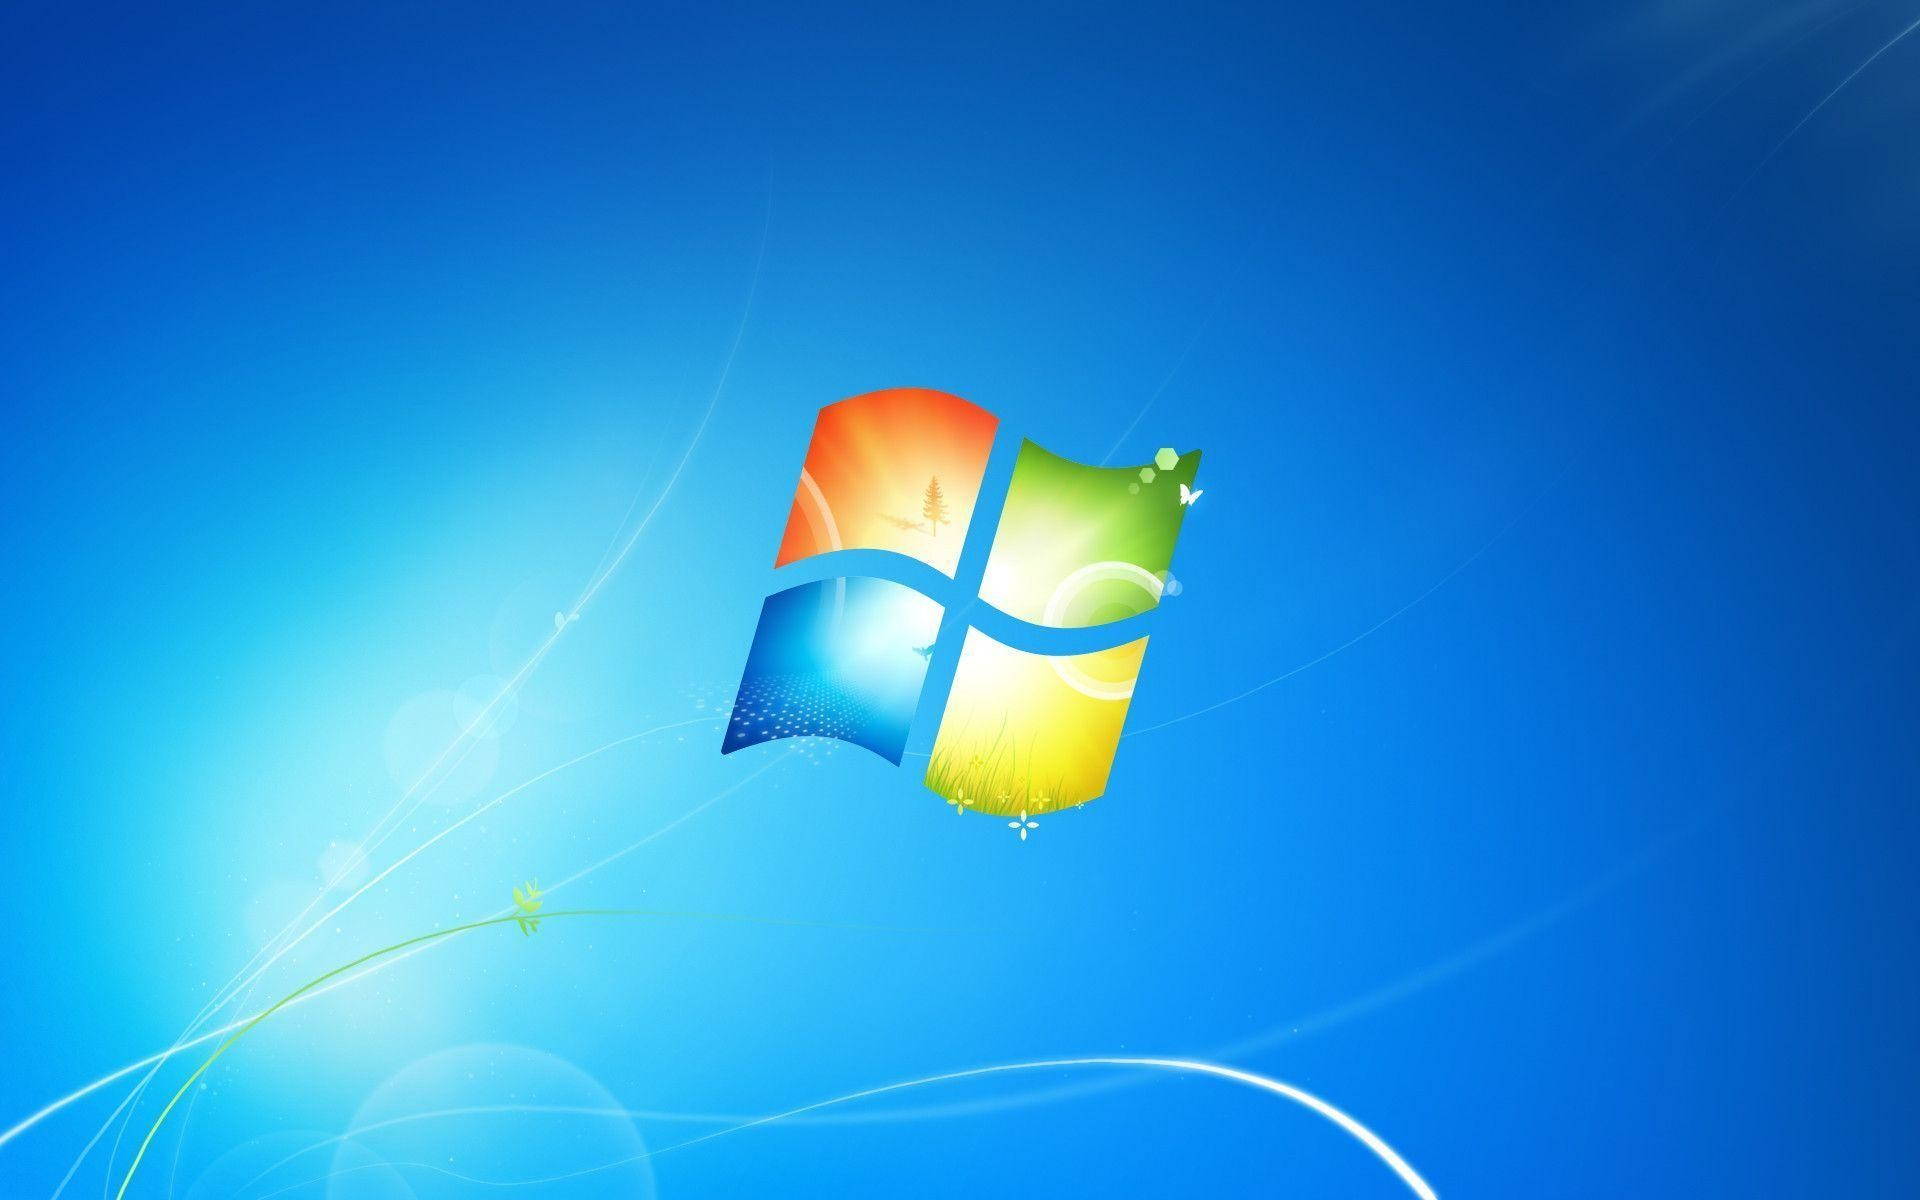 windows 7 ultimate wallpaper hd 50 images